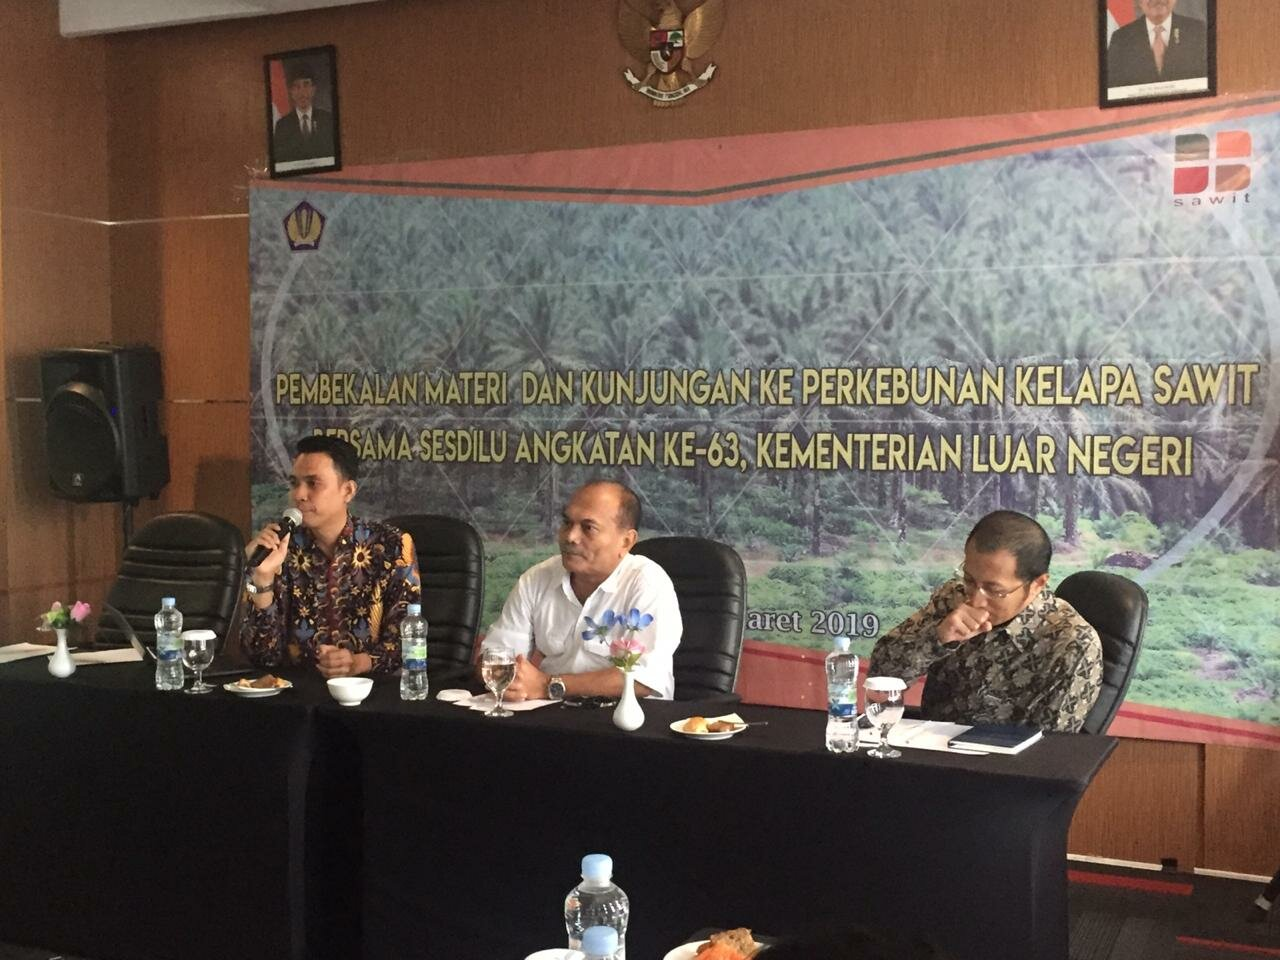 Indonesian Diplomats Visit Belitung Island to Improve Knowledge of Sustainable Palm Oil